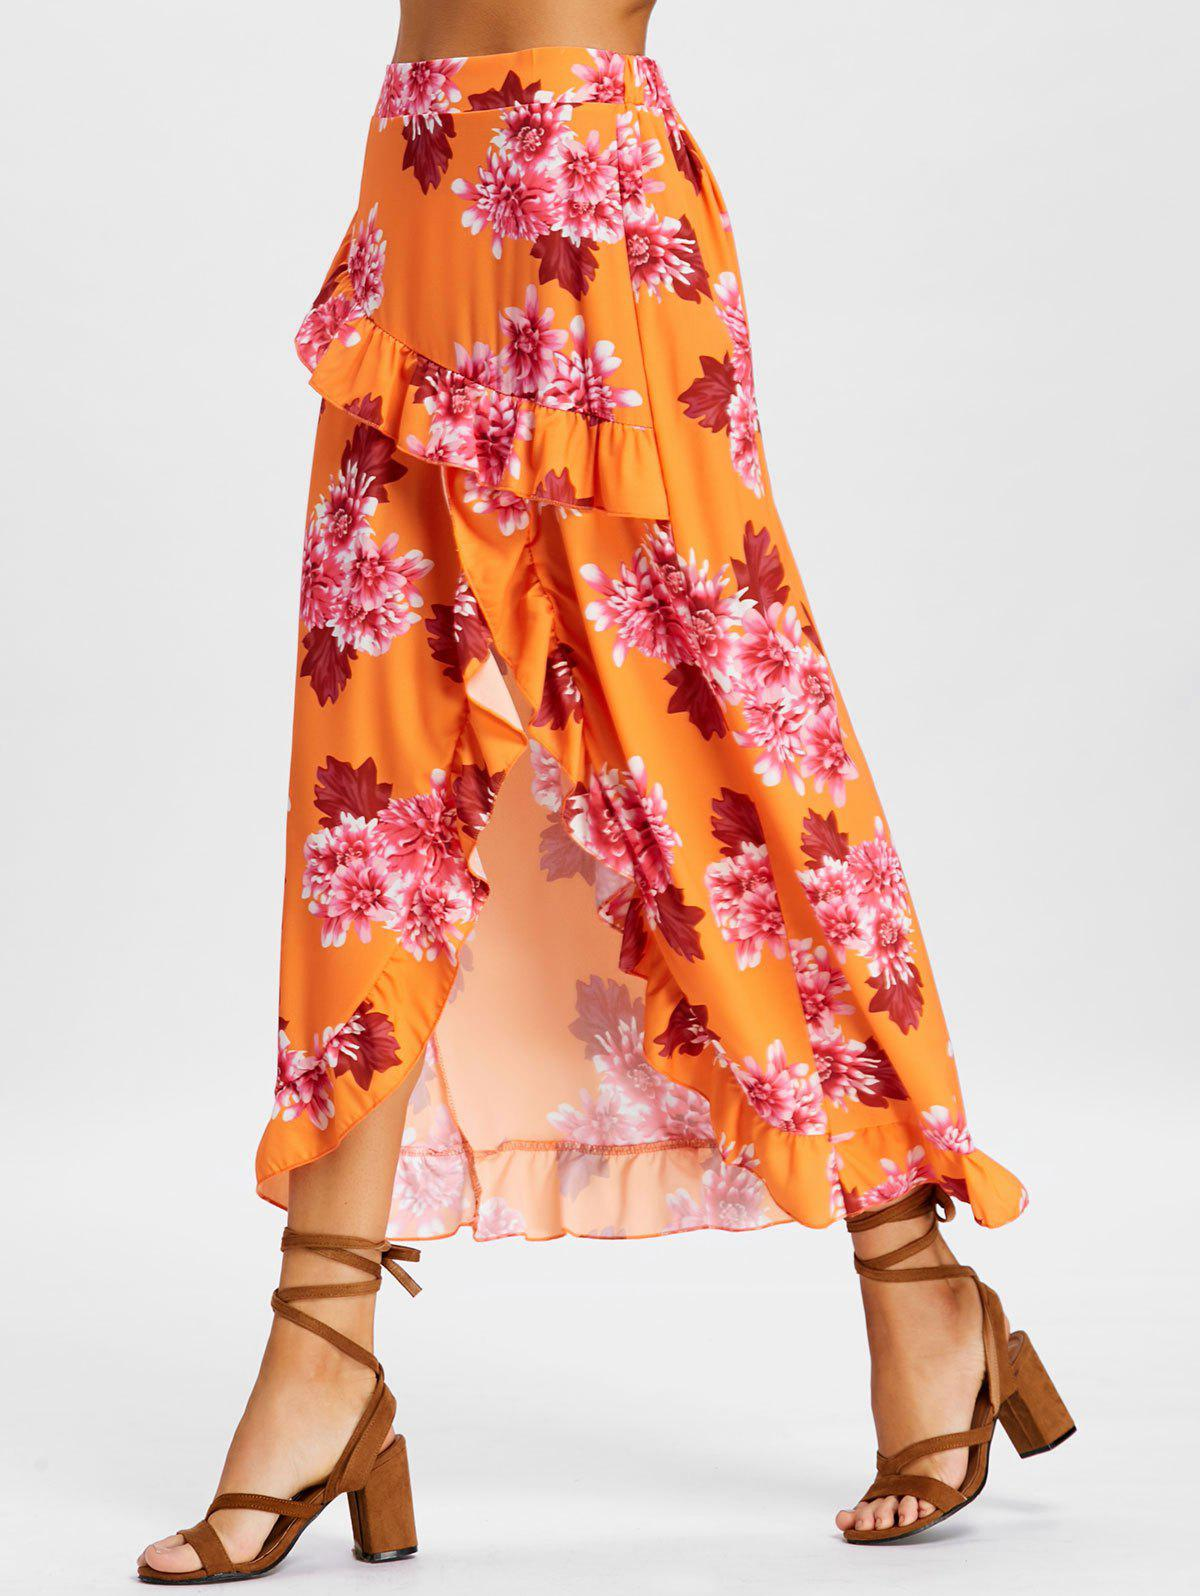 Floral Ruffle High Low Skirt - BRIGHT ORANGE XL